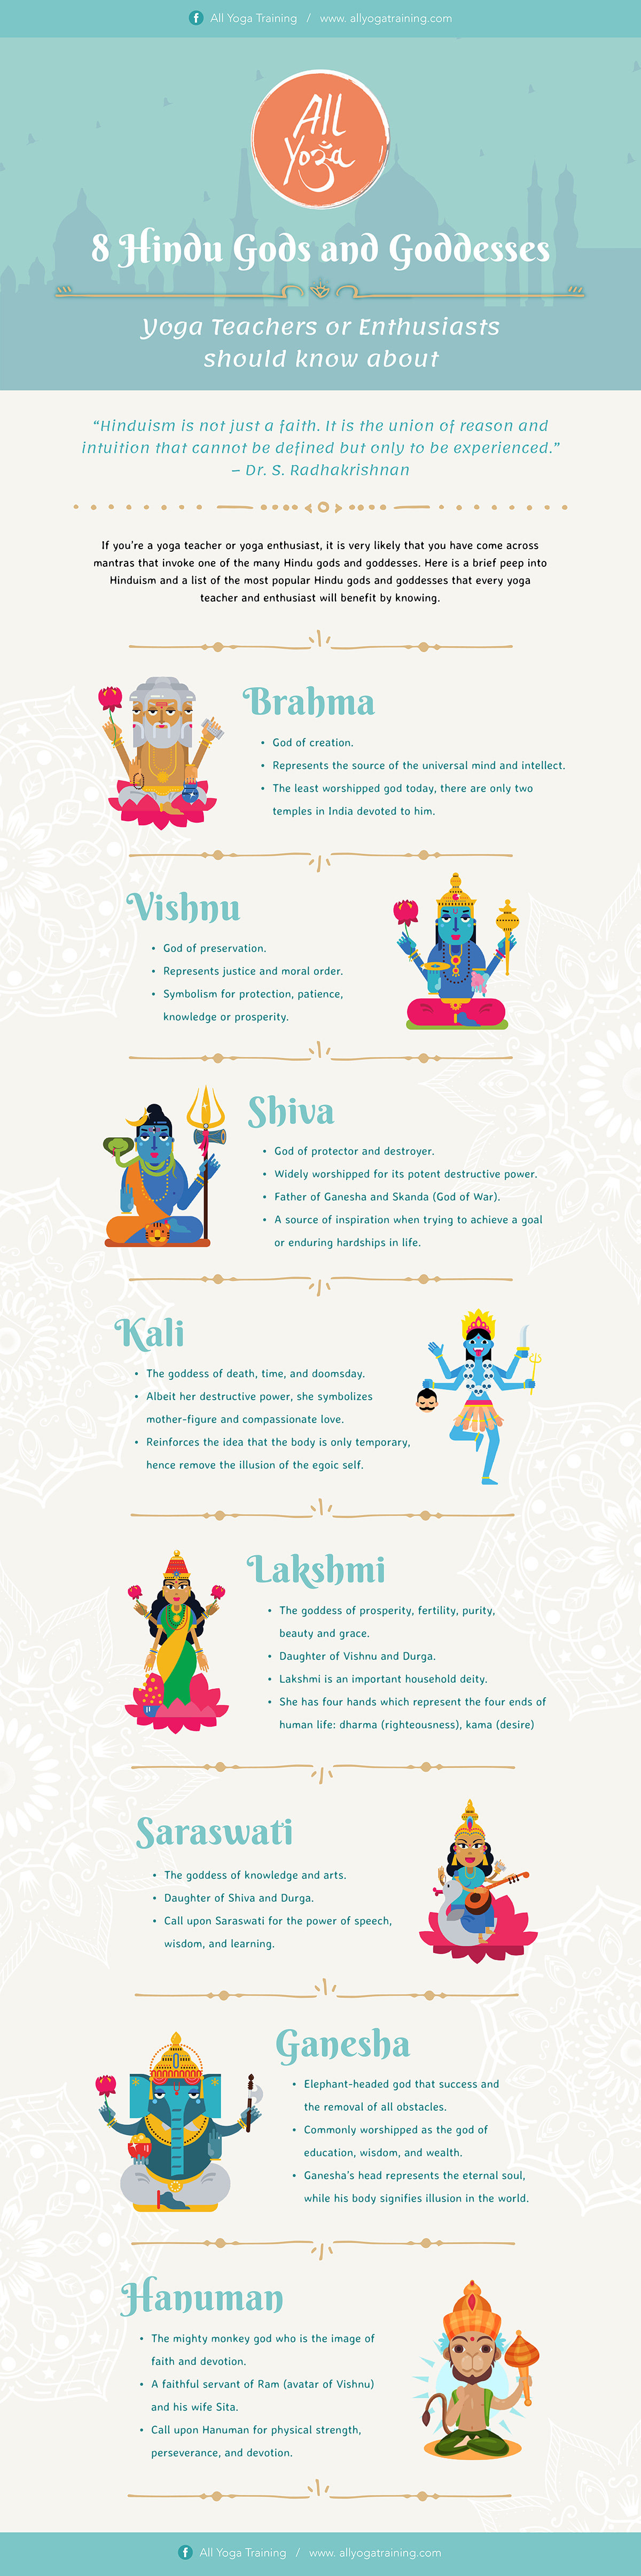 8 Hindu Gods and Goddesses